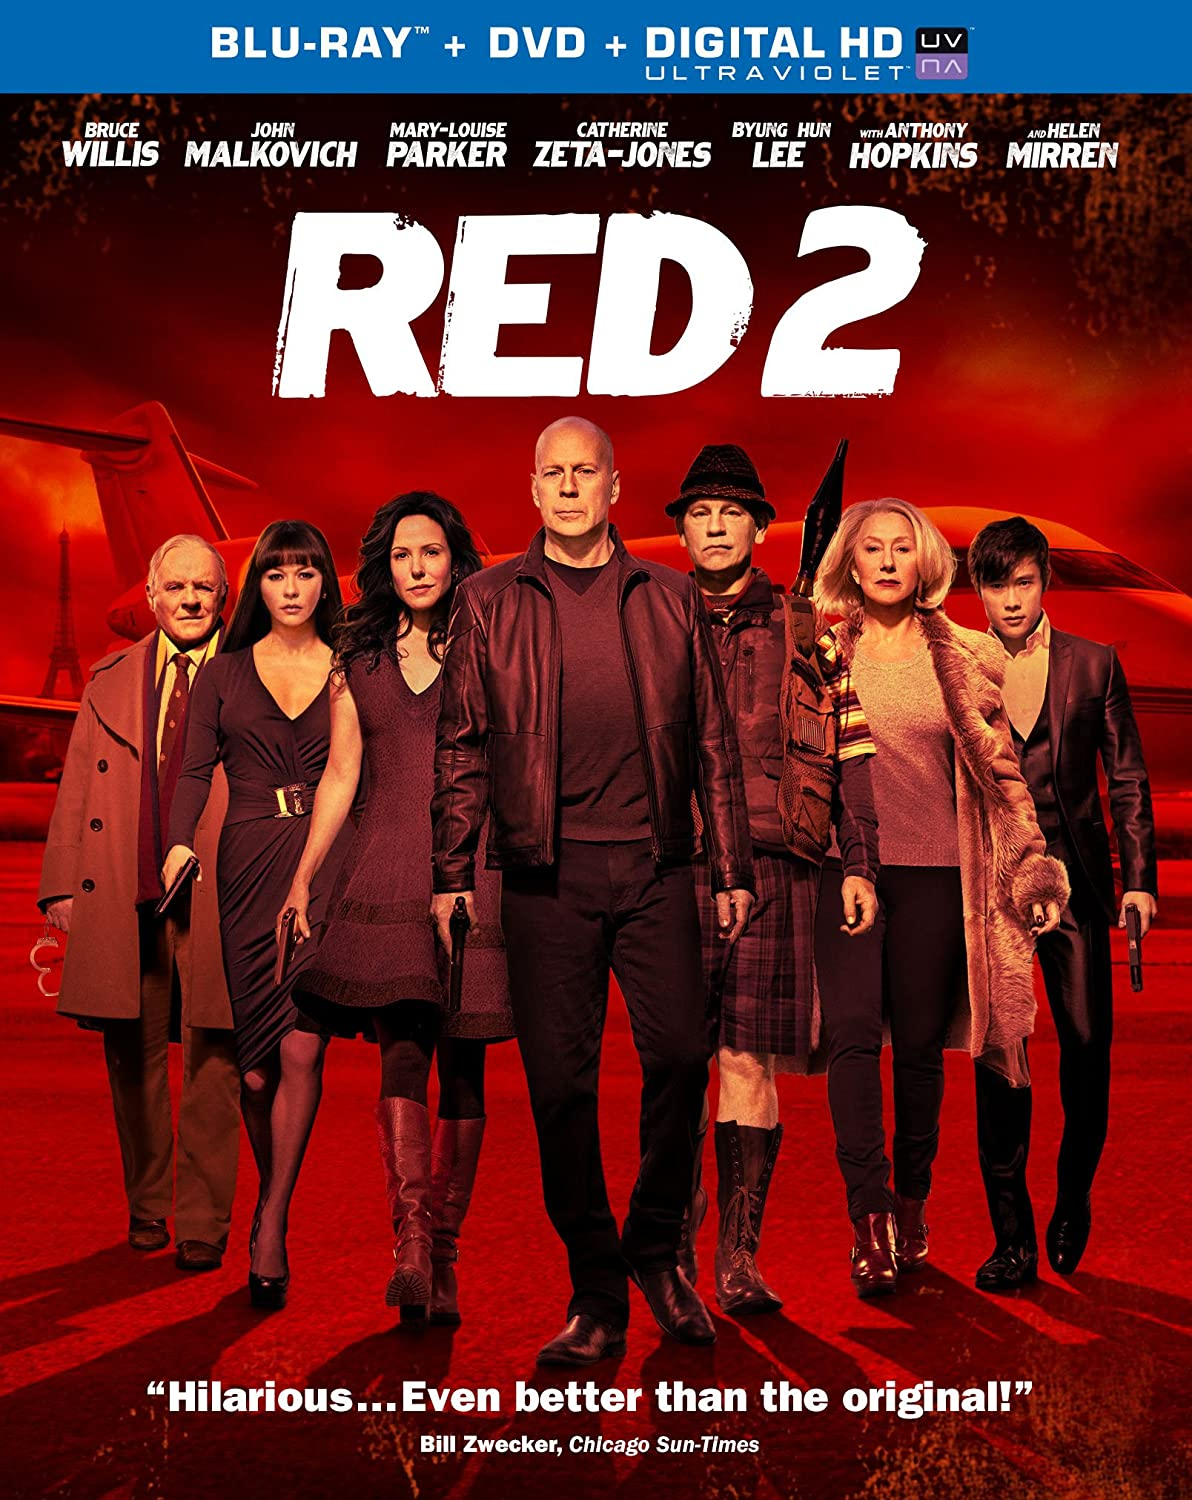 Amazon.com: <b>Red 2</b> [Blu-ray, DVD, Digital HD]: Bruce Willis <b>...</b>